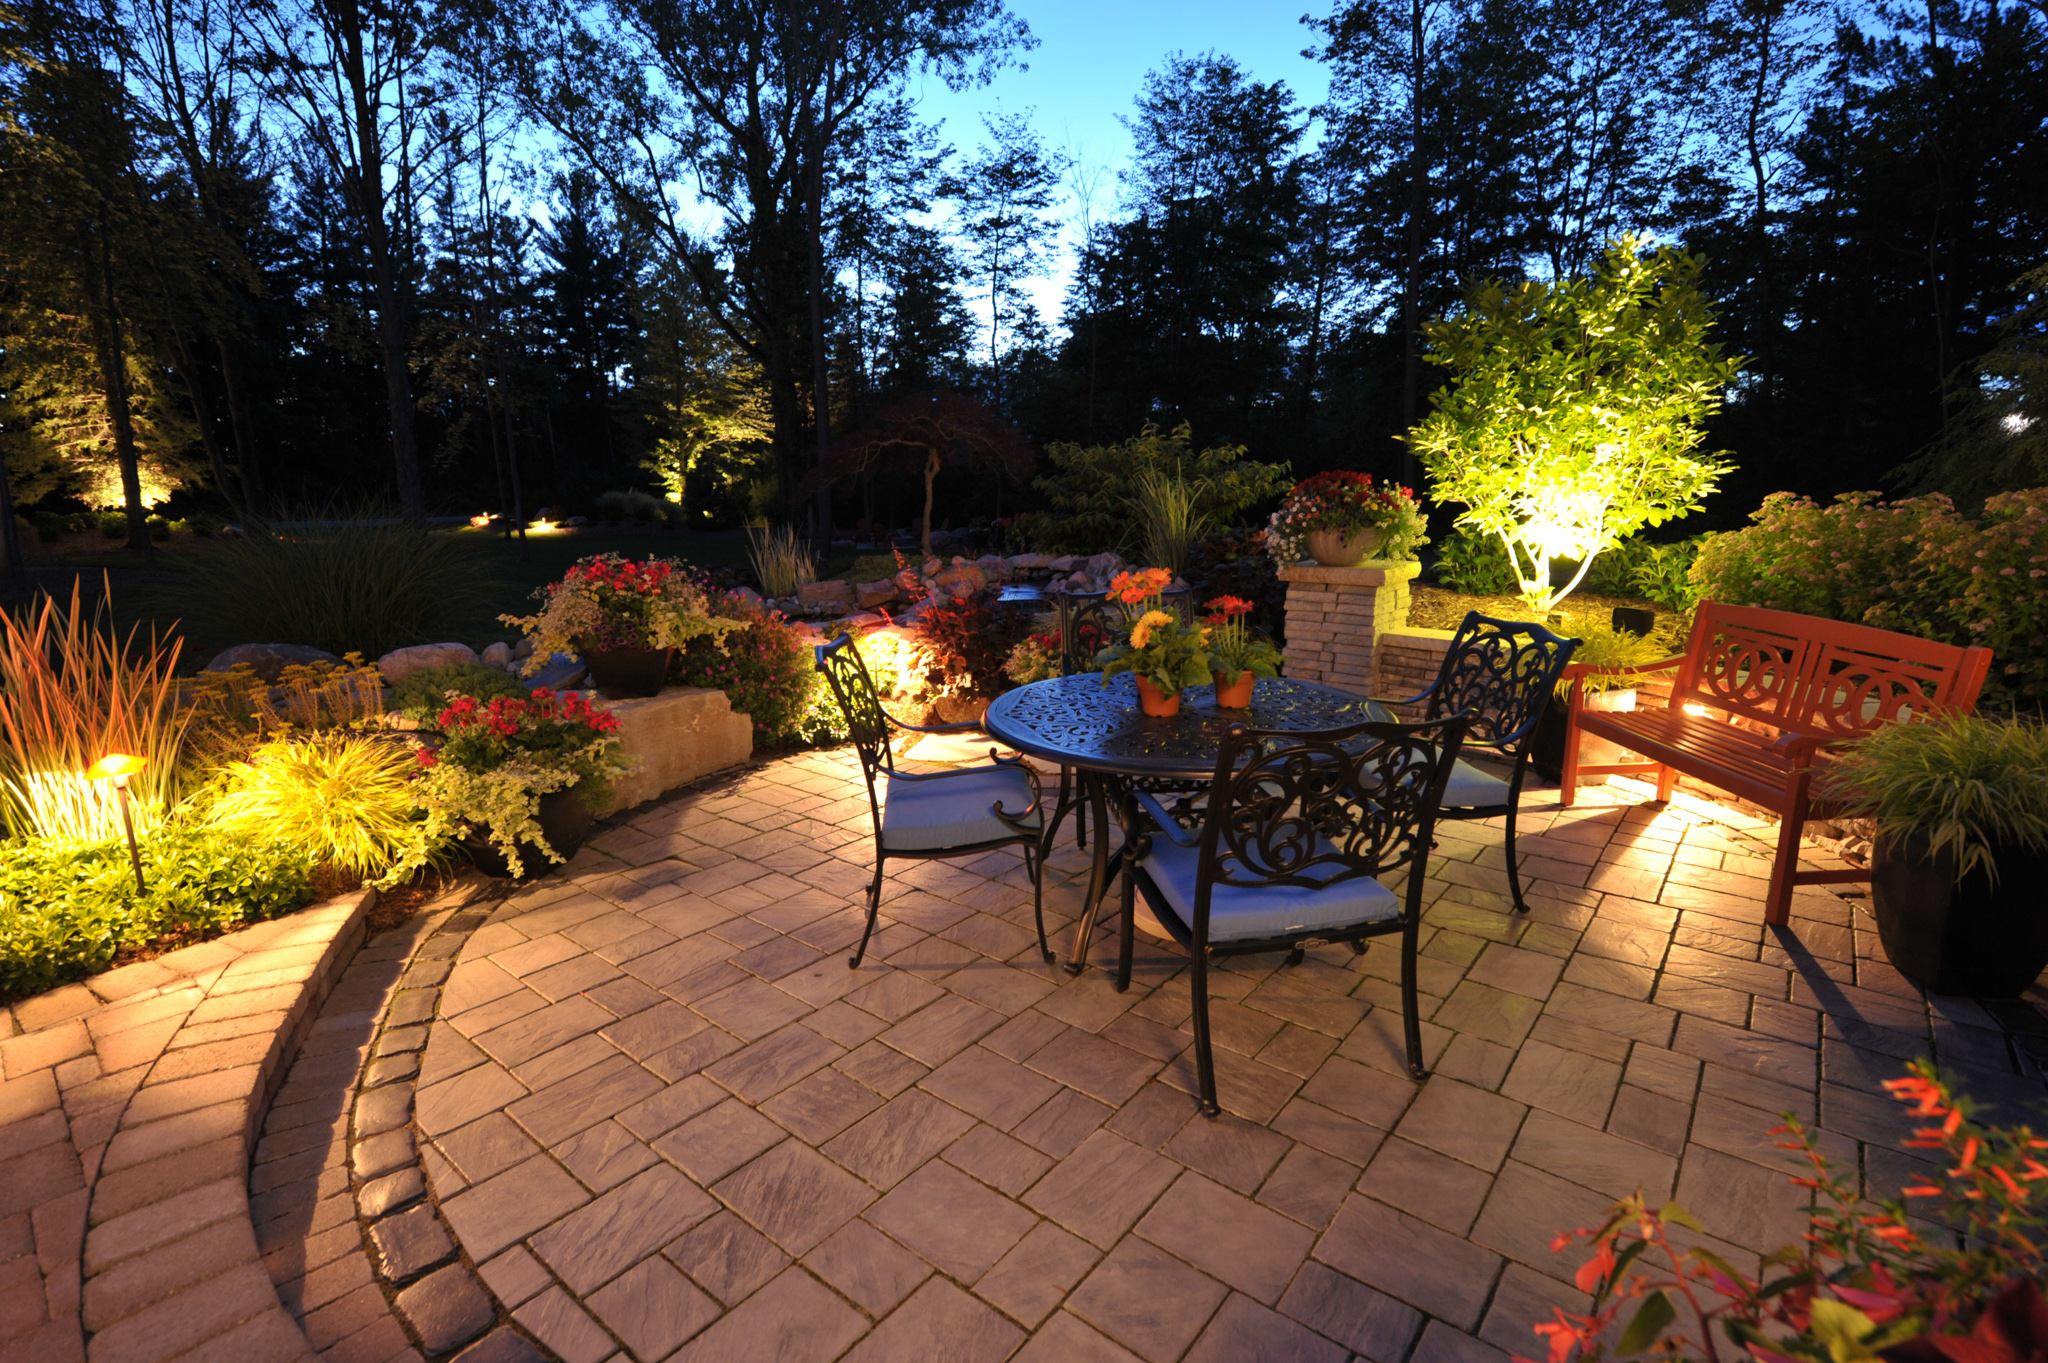 Landscape Lighting Ideas | Lawn Care Midland MI on landscape tree lighting ideas, landscape driveway lighting ideas, landscape lighting design ideas, landscape solar lighting ideas, landscape rope lighting ideas, landscape led lighting ideas, landscape path lighting ideas, landscape accent lighting ideas,